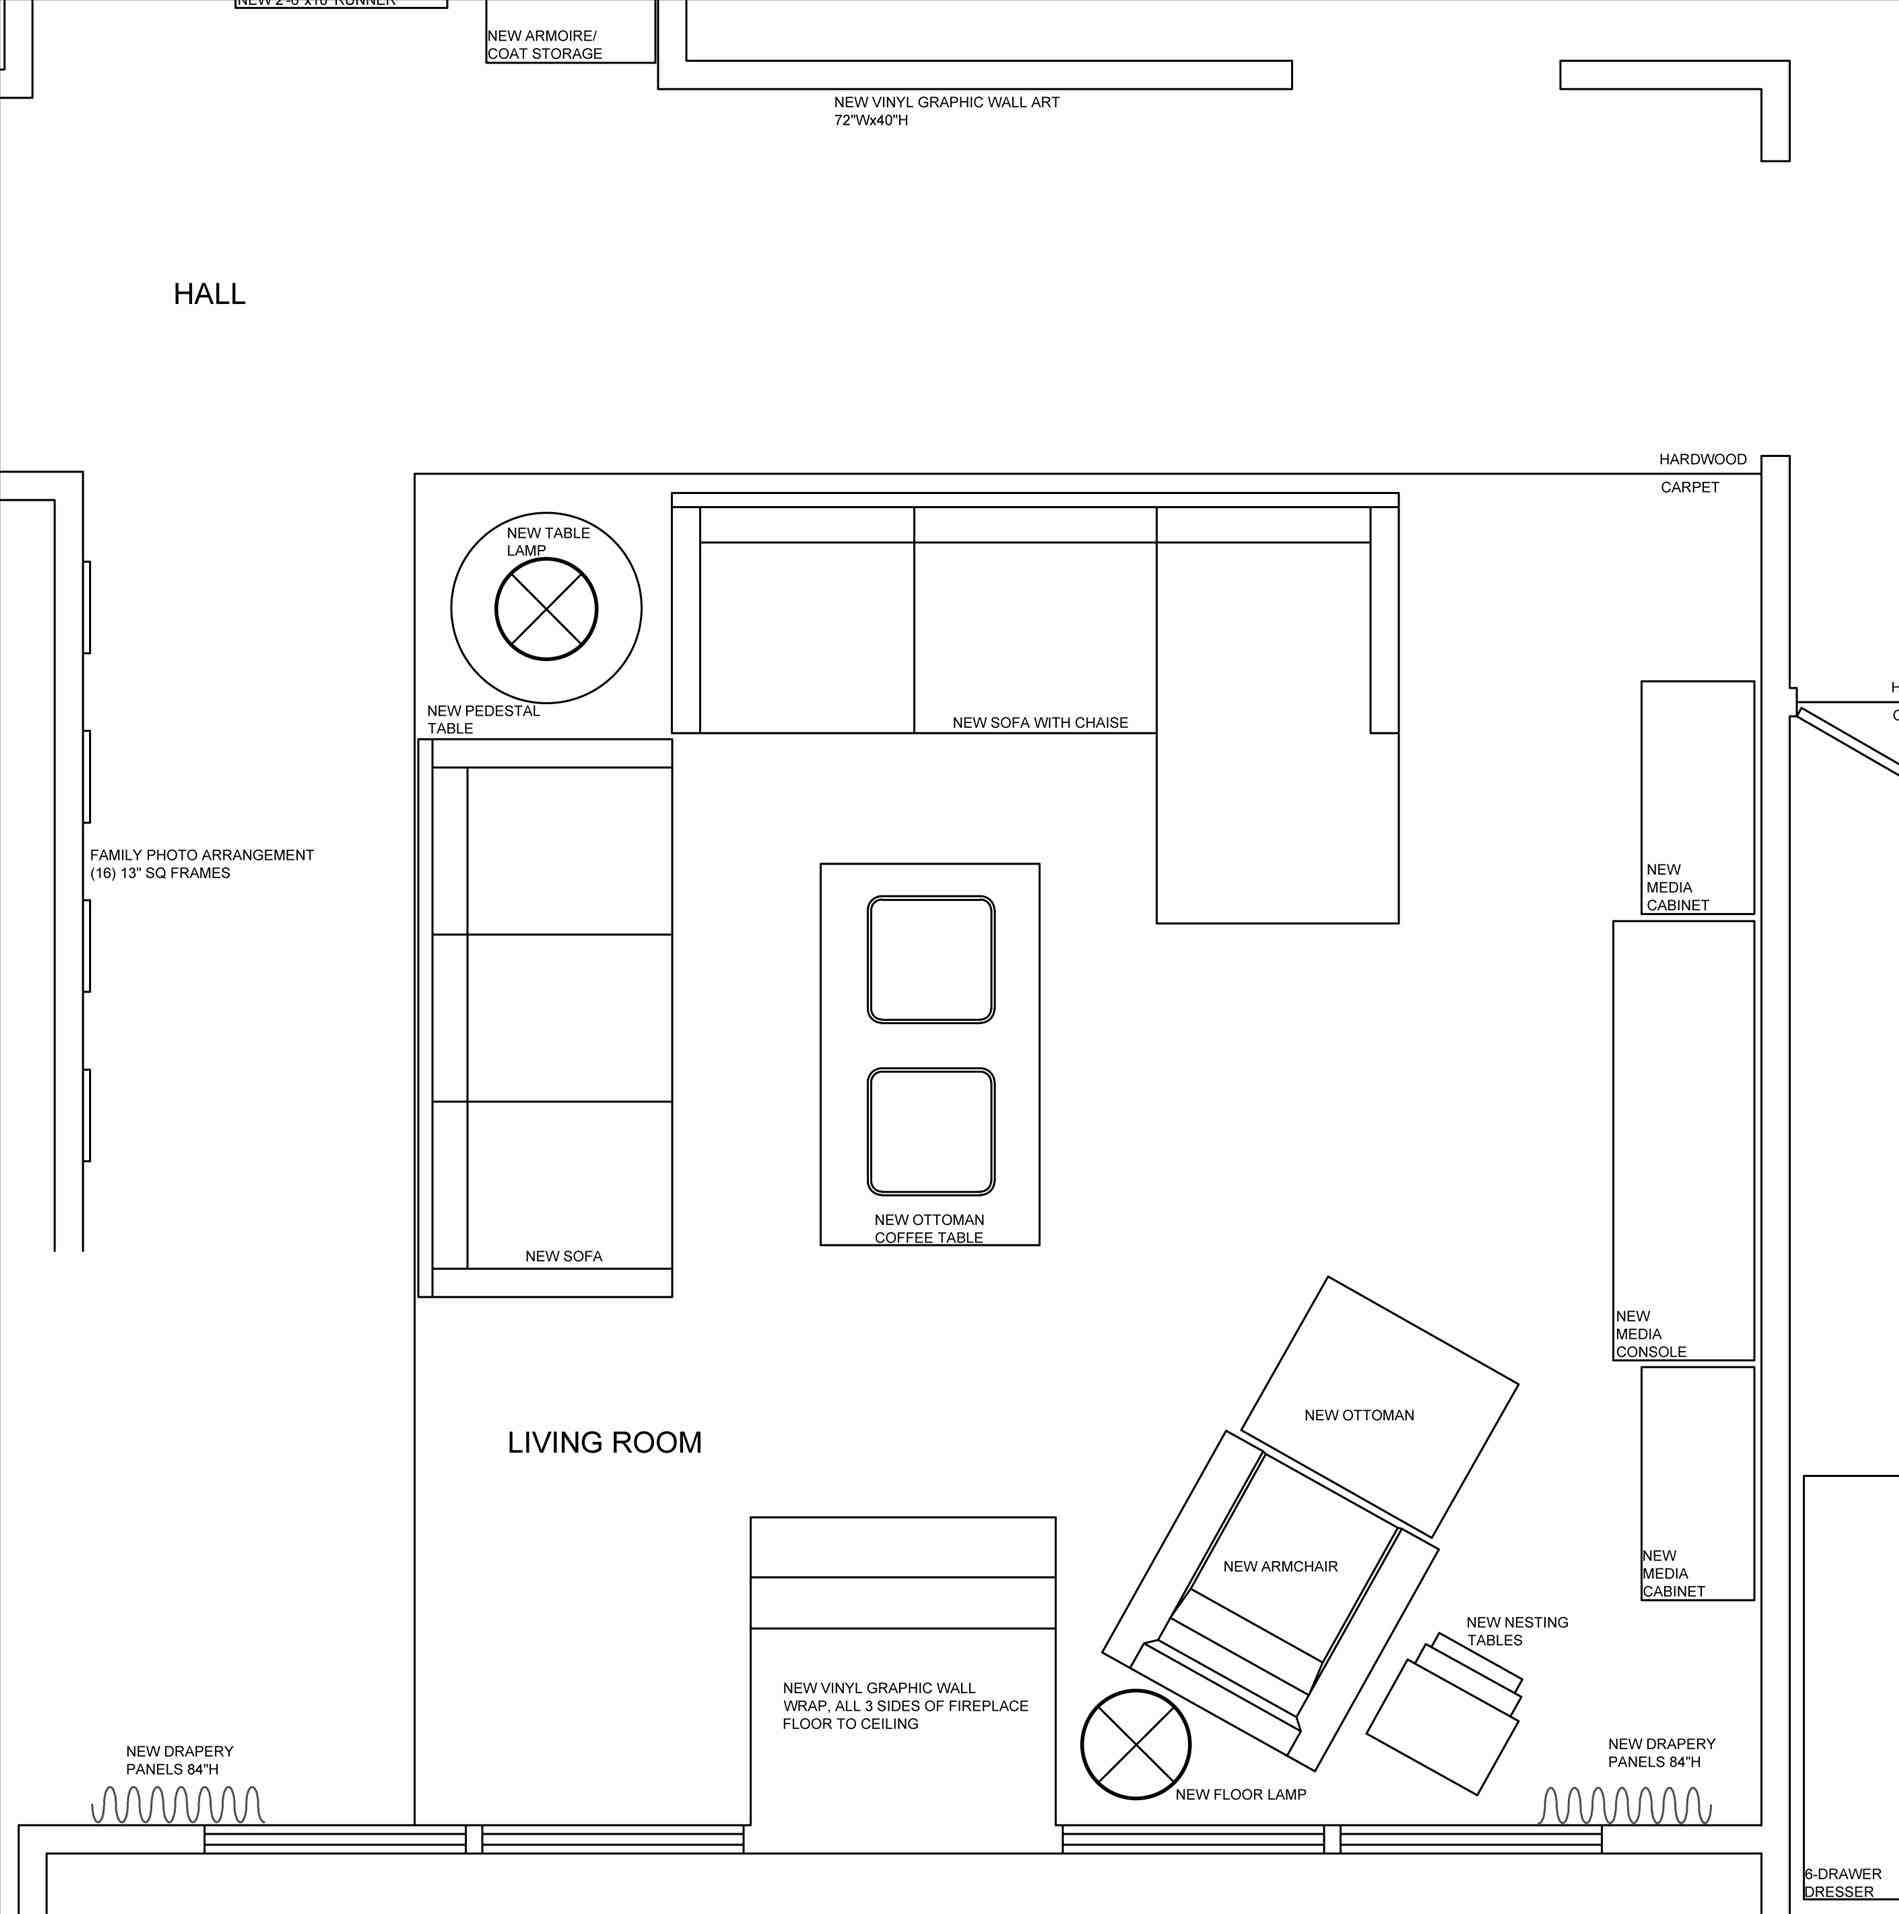 autocad house drawing at getdrawings com free for personal use